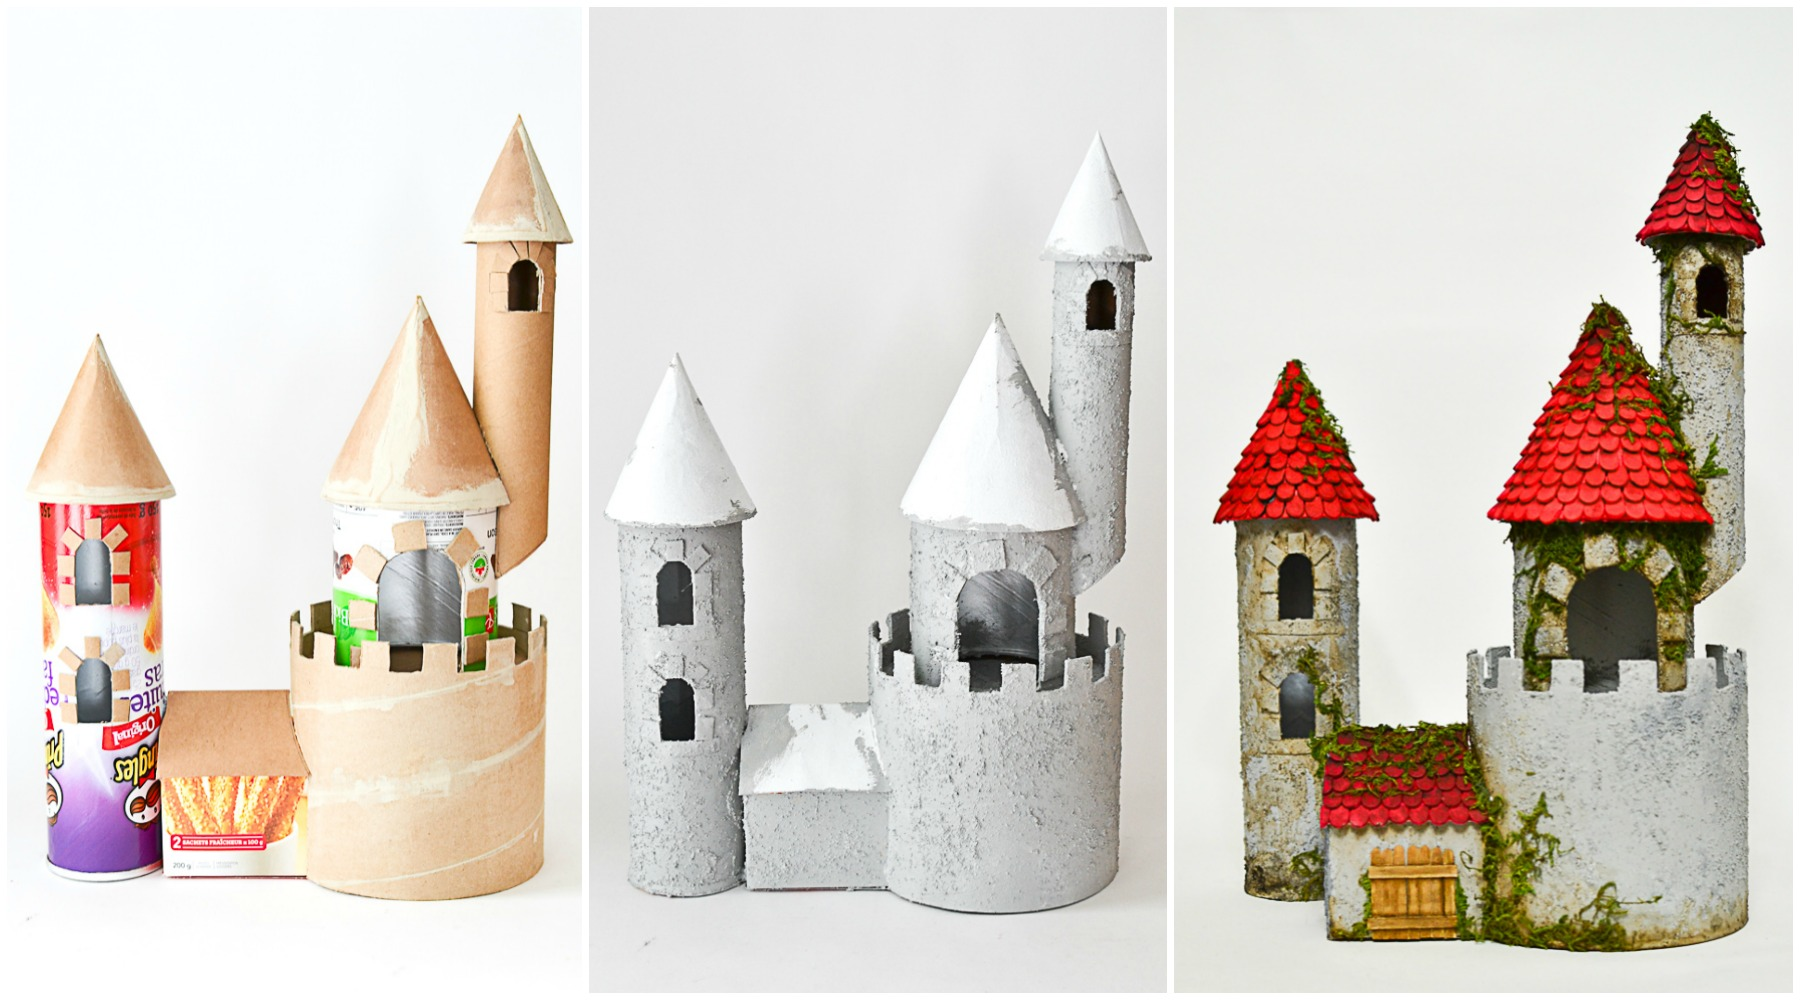 Diy make a castle from recyclable materials adventure in for Build a castle house